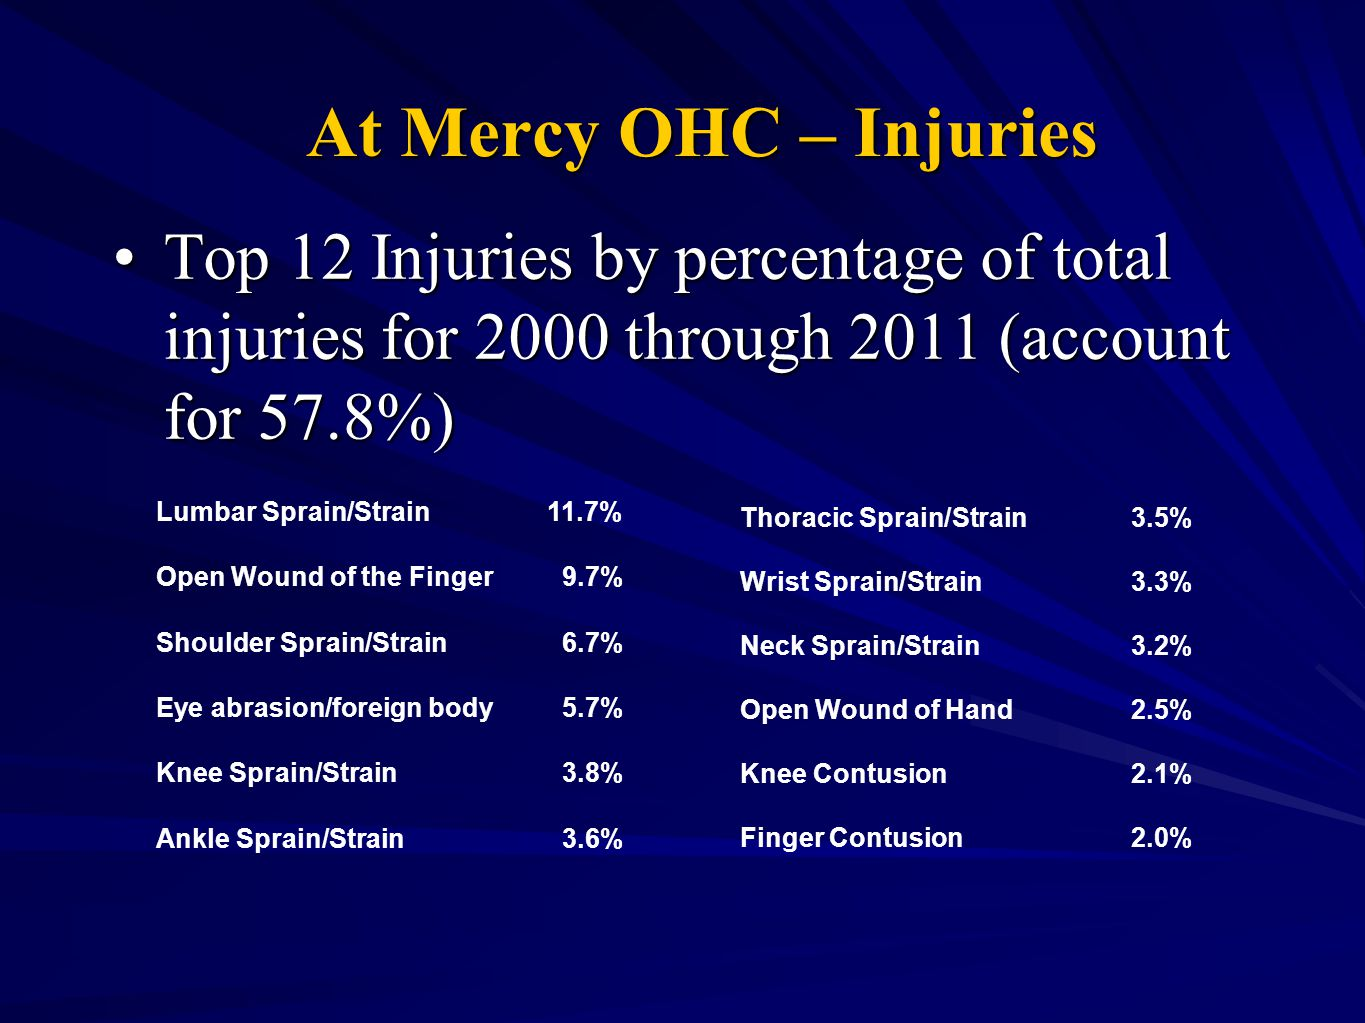 At Mercy OHC – Injuries Top 12 Injuries by percentage of total injuries for 2000 through 2011 (account for 57.8%)Top 12 Injuries by percentage of total injuries for 2000 through 2011 (account for 57.8%) Lumbar Sprain/Strain 11.7% Open Wound of the Finger 9.7% Shoulder Sprain/Strain 6.7% Eye abrasion/foreign body 5.7% Knee Sprain/Strain 3.8% Ankle Sprain/Strain 3.6% Thoracic Sprain/Strain 3.5% Wrist Sprain/Strain 3.3% Neck Sprain/Strain 3.2% Open Wound of Hand 2.5% Knee Contusion 2.1% Finger Contusion 2.0%